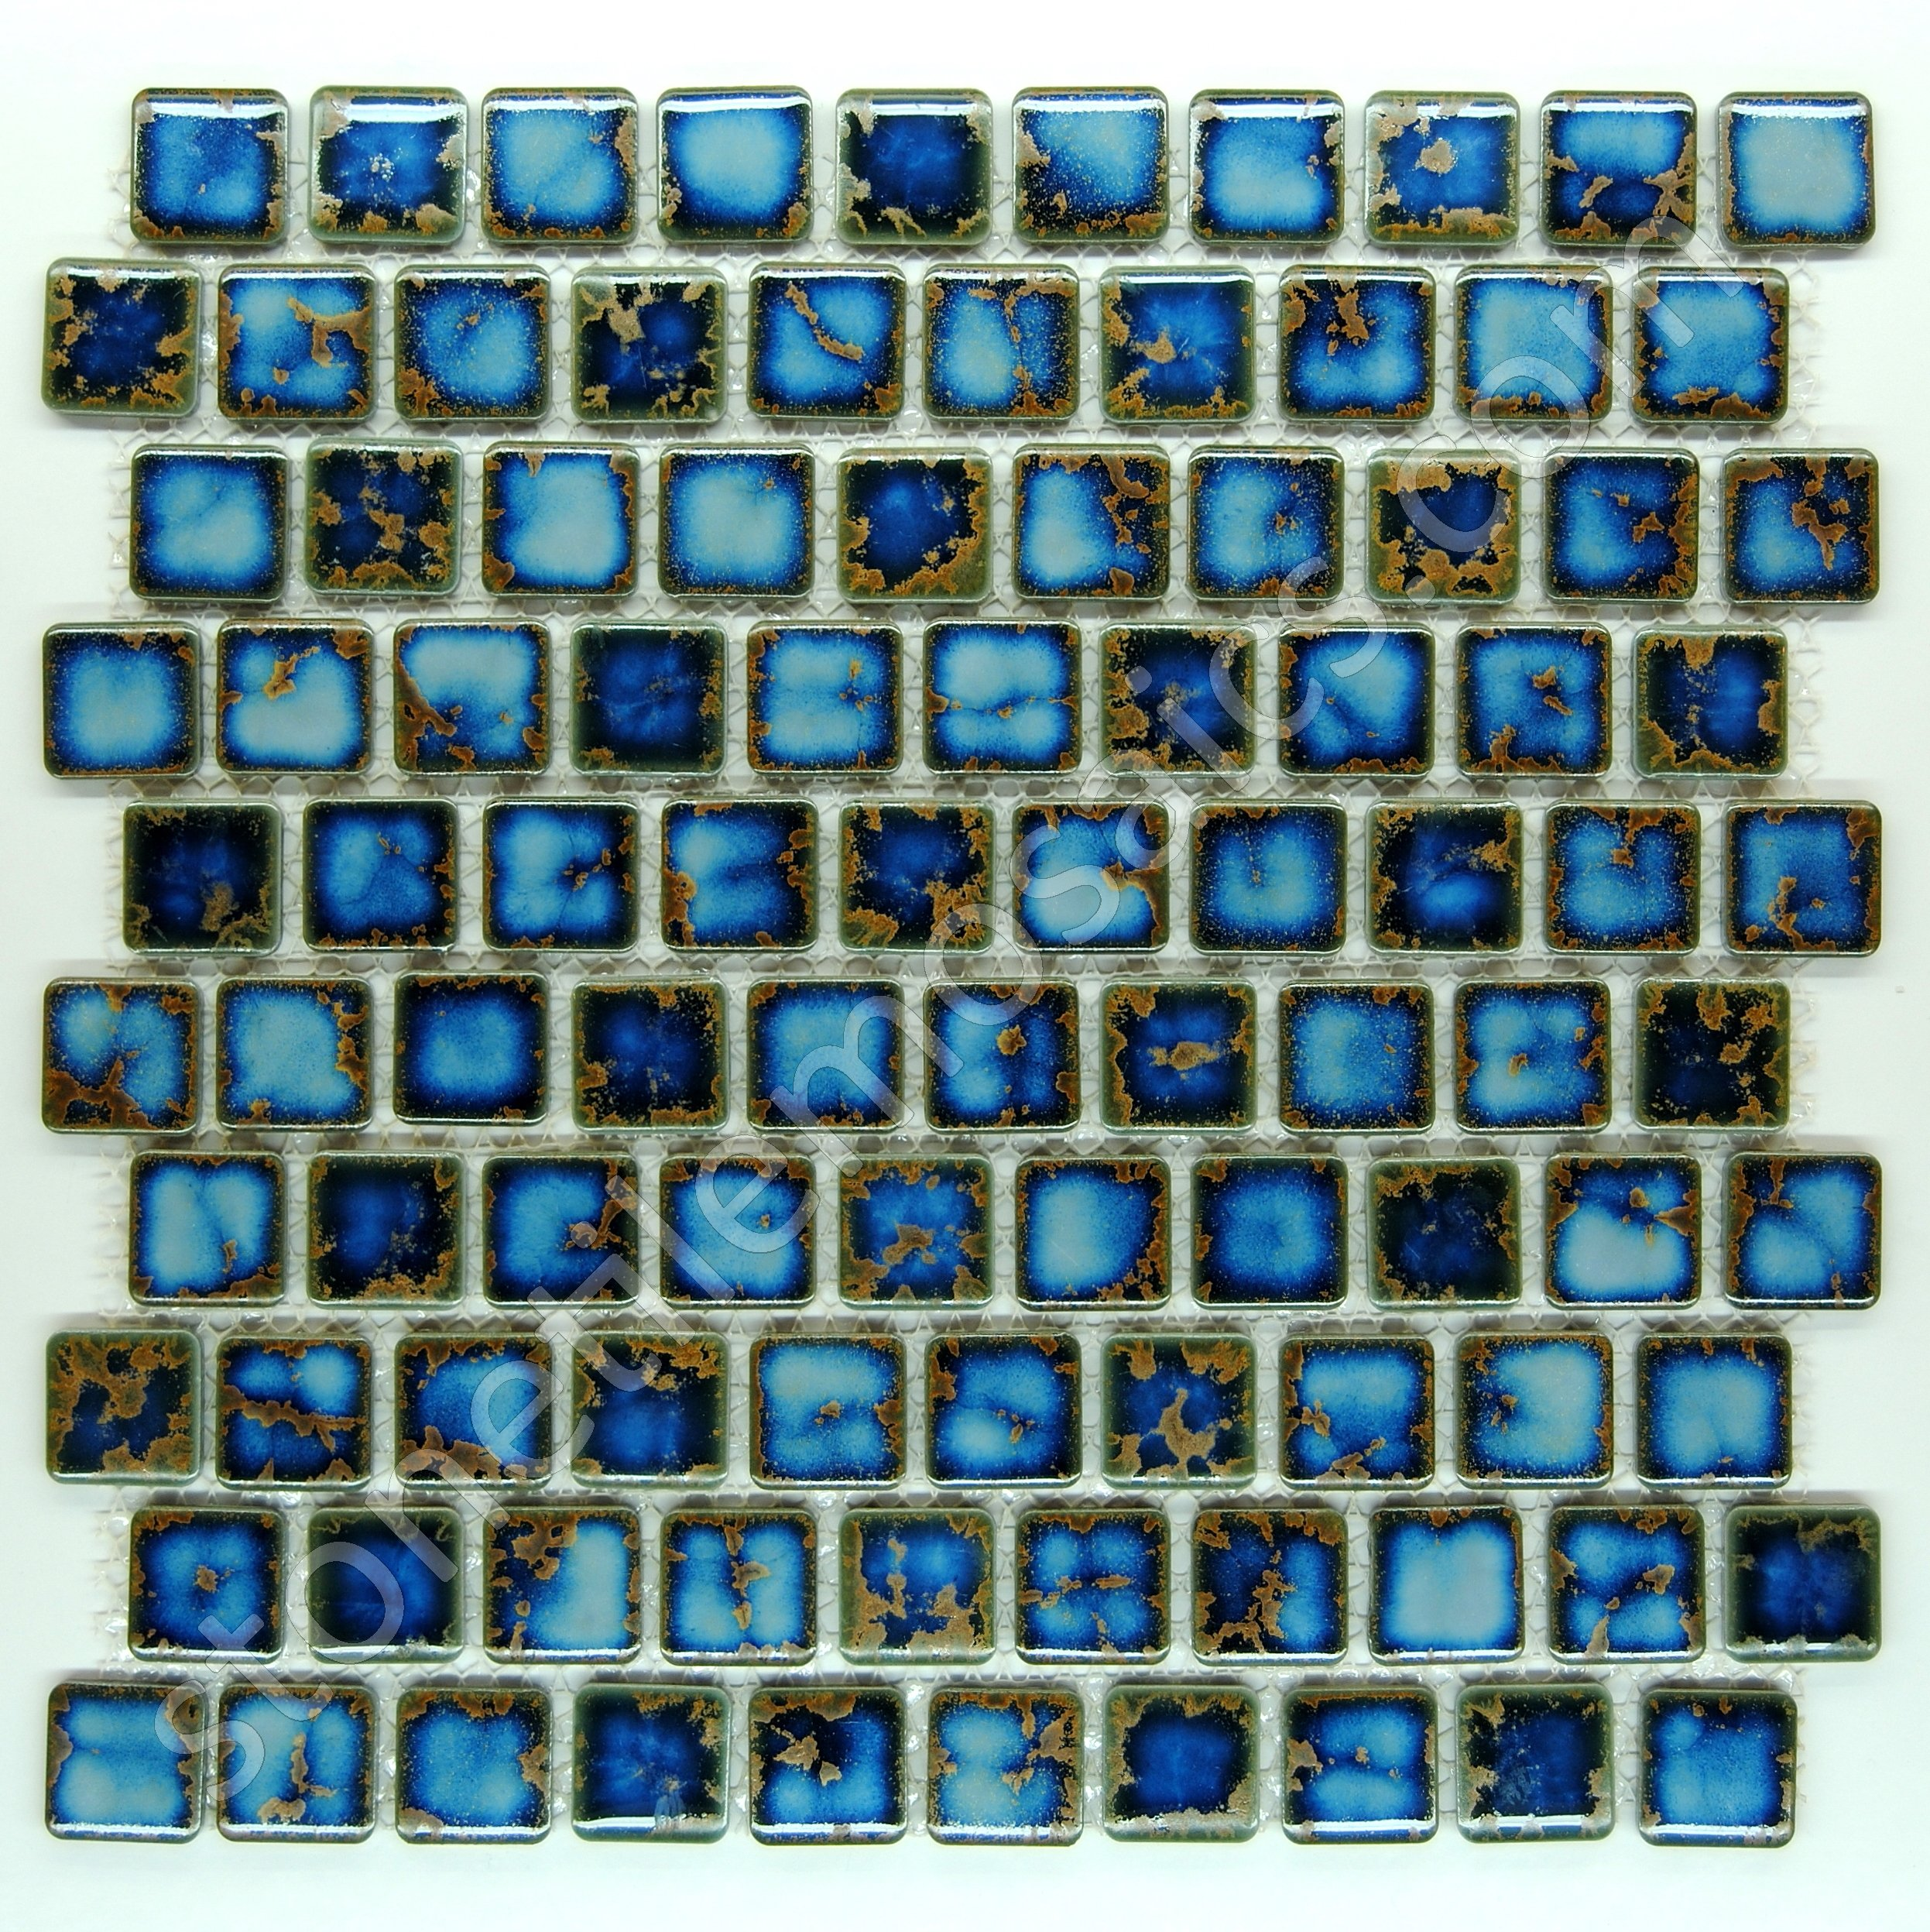 Square Tile Blue Calacatta Porcelain Mosaic 1-1/8'' X 1-1/8'' for Bathroom Floors, Walls and Kitchen Backsplashes, Pool Tile (Box of 5 Sq Ft)